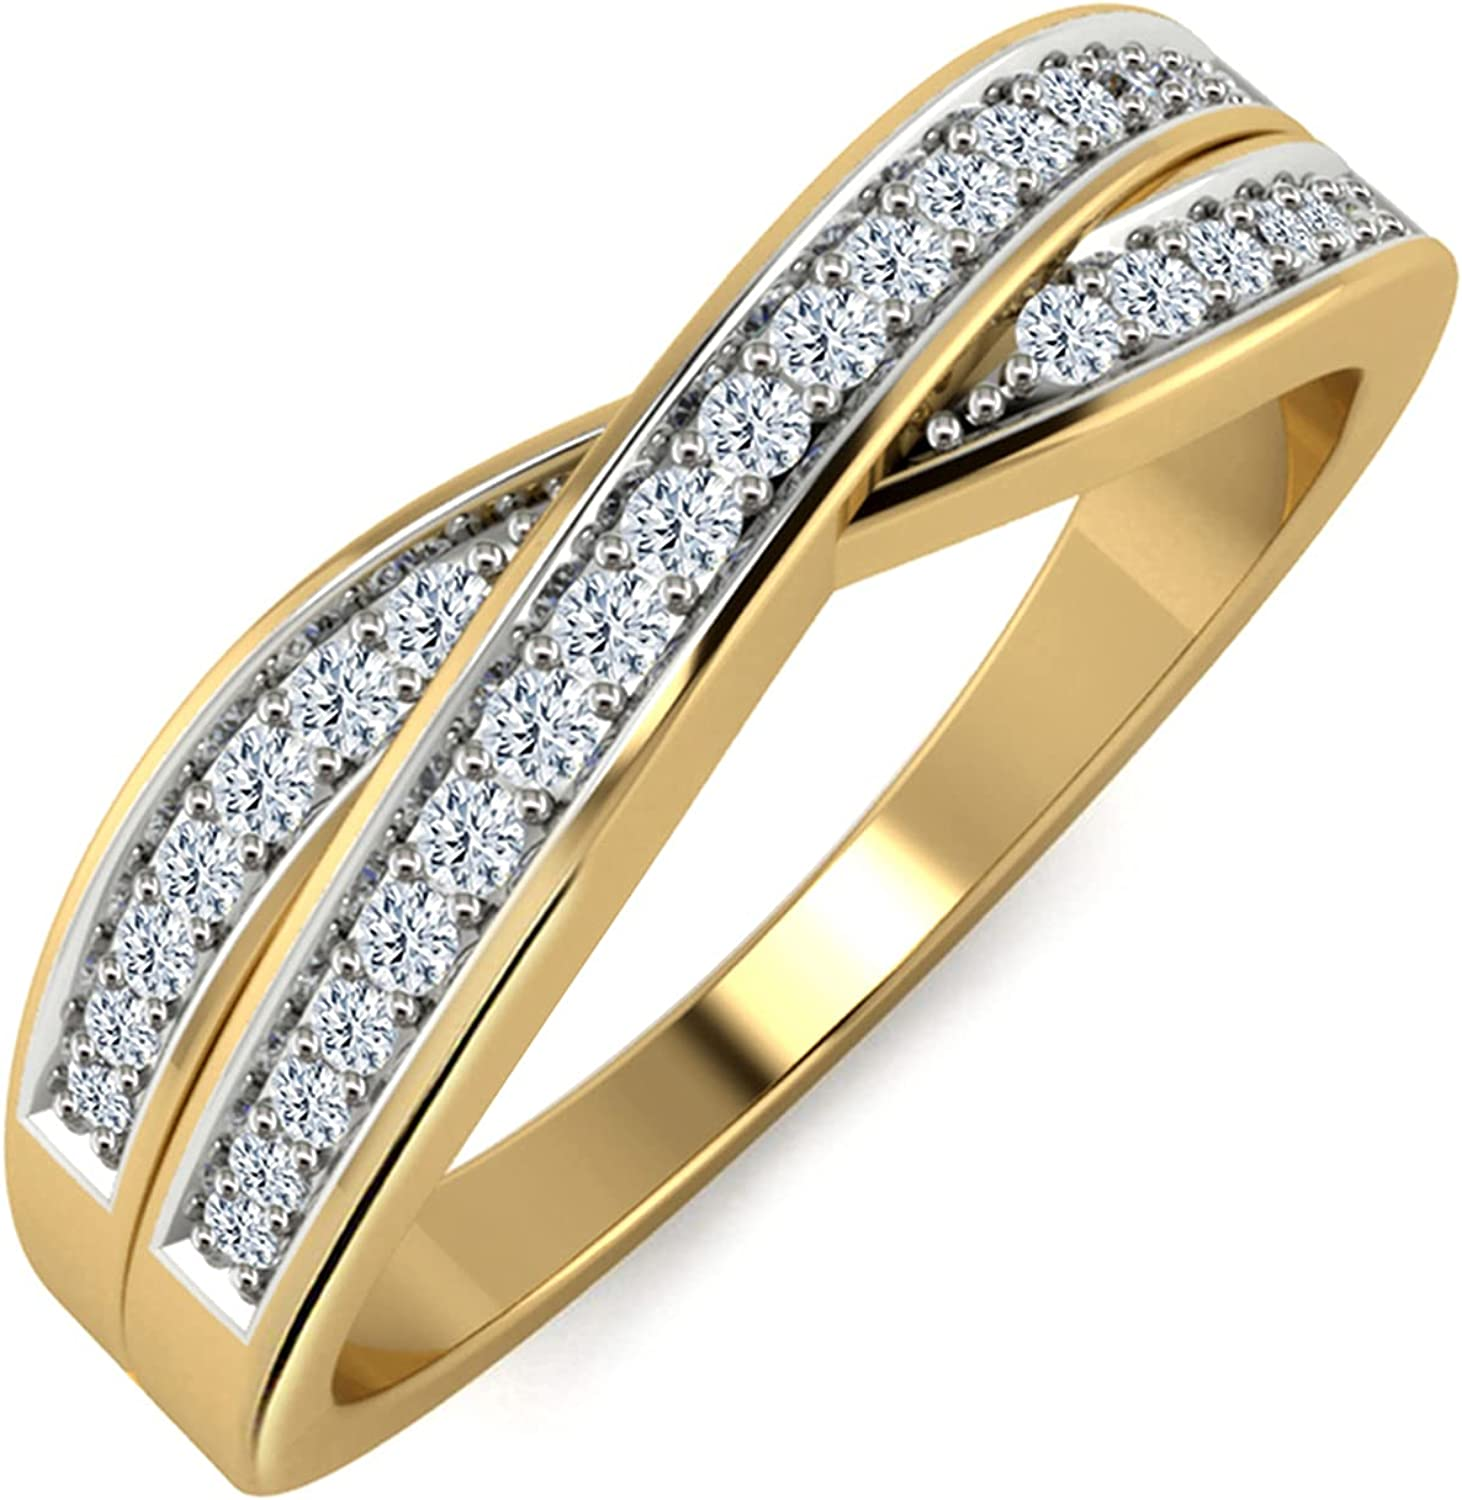 Natural Diamond Wedding Band IGI Certified Round 0.13 Year-end annual account cttw 1 Denver Mall Cut